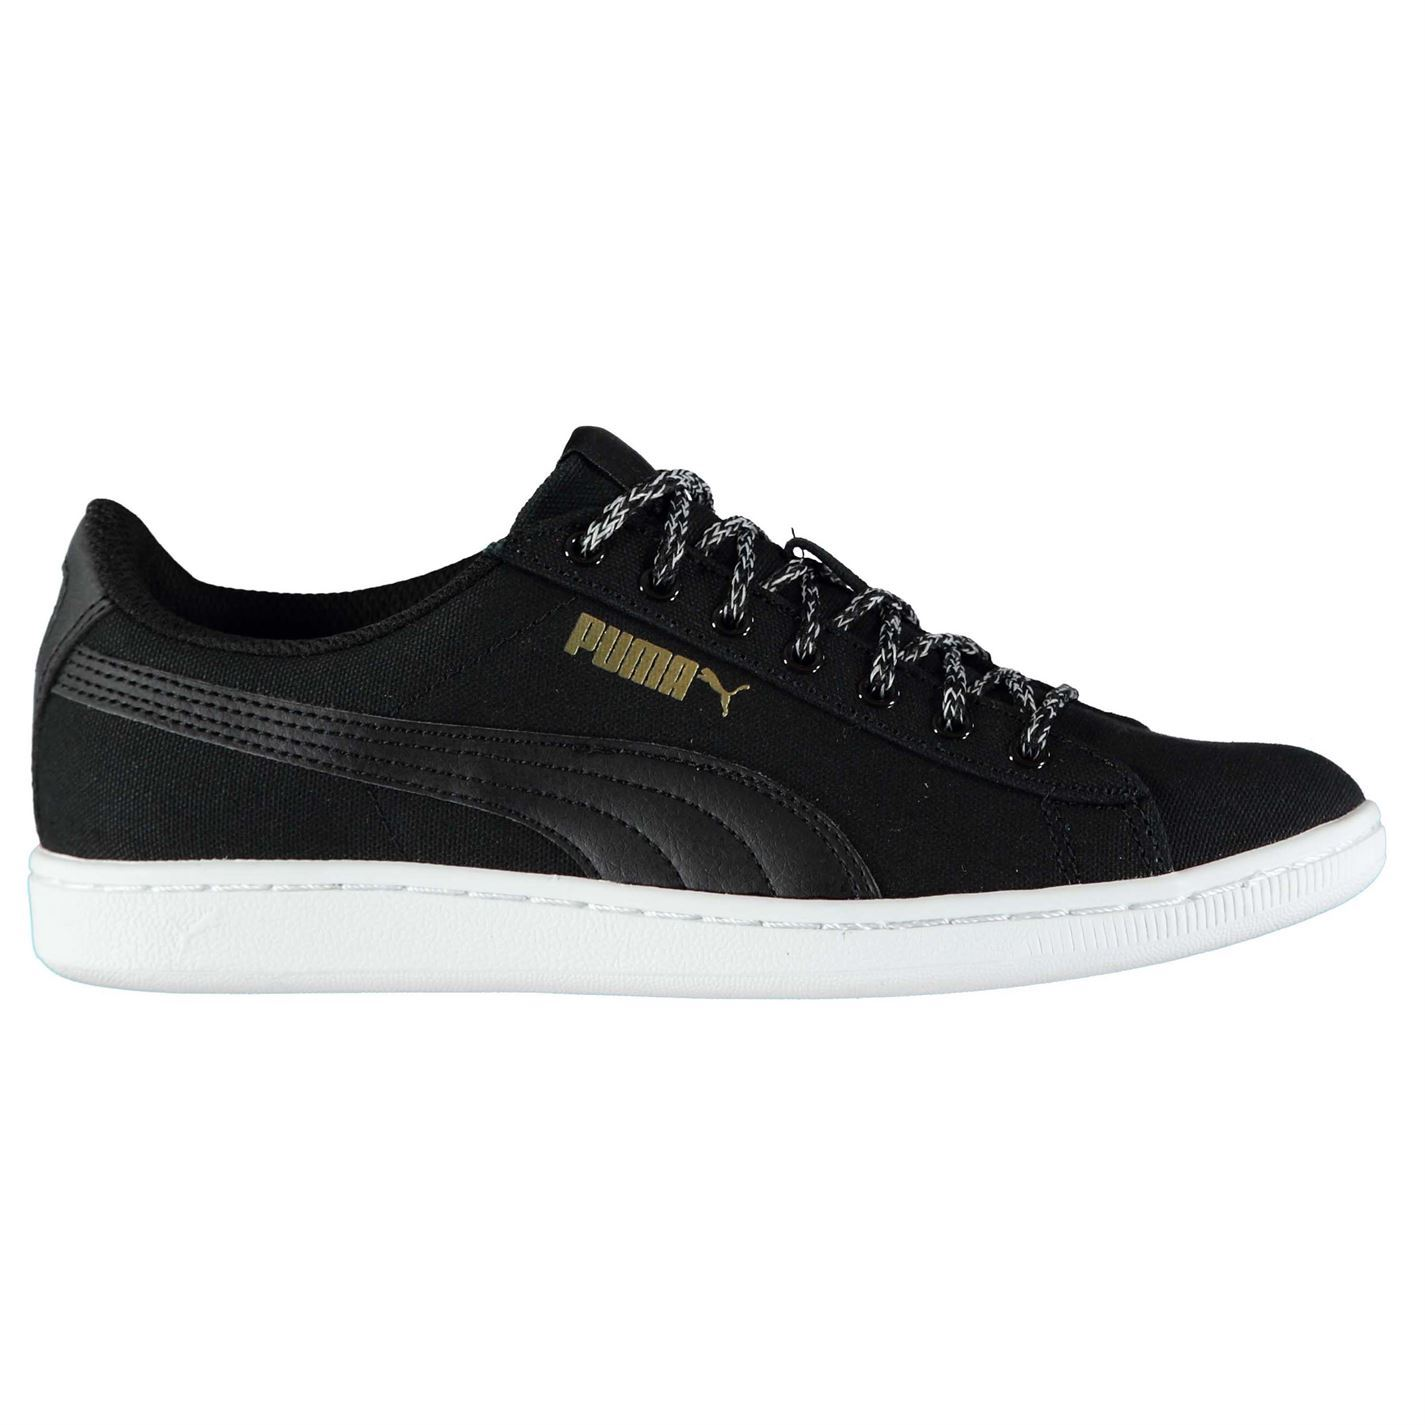 c60a8877333e Details about Puma Womens Vikky Canvas Low Lace Up Shoes Padded Ankle  Collar Textile Casual